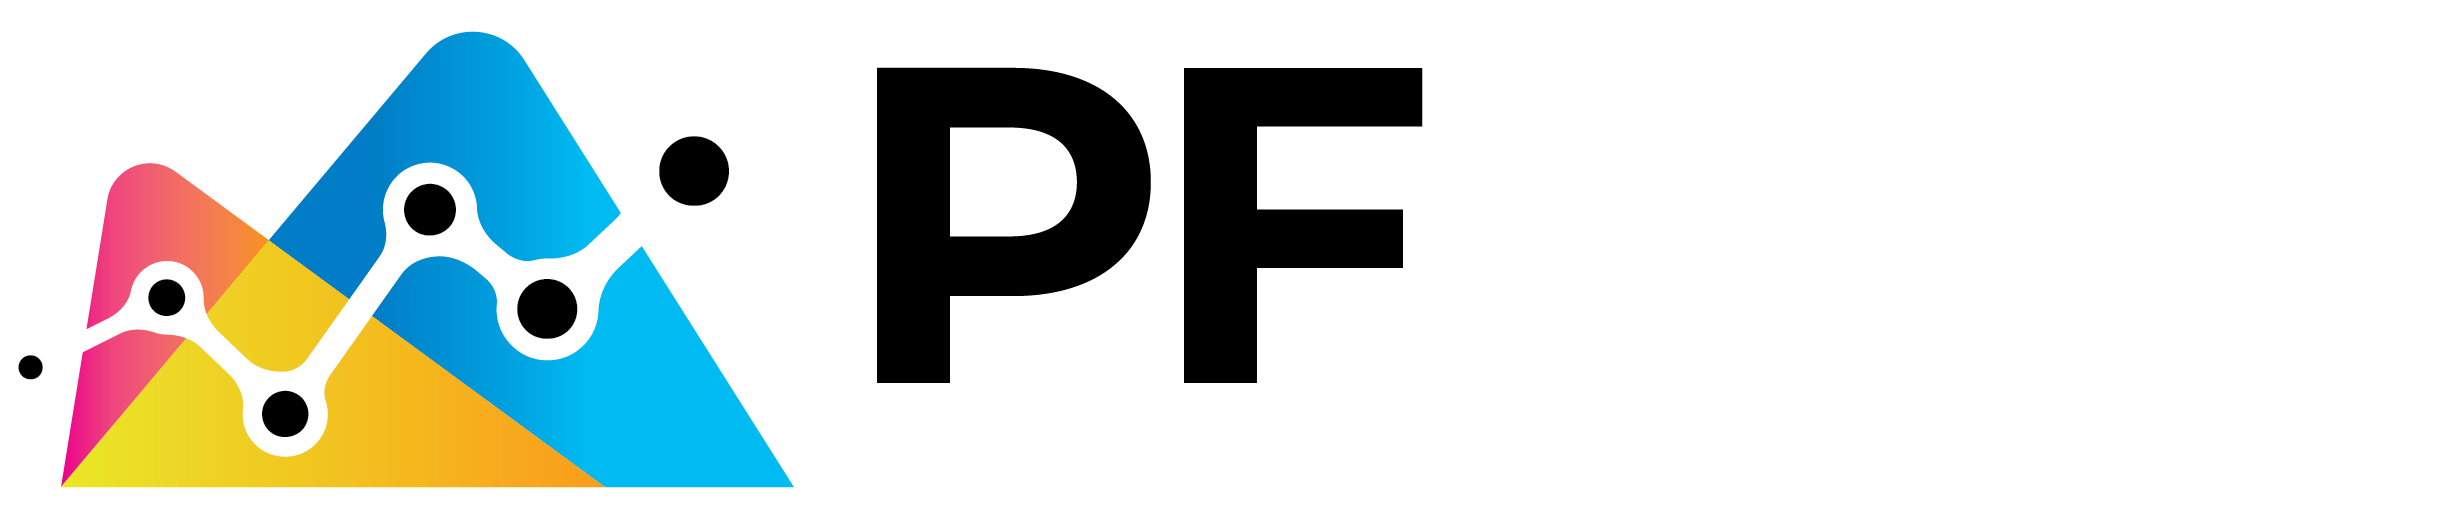 Personal Finance and Investment Articles, Guides, Tips & Video's | Personal Finance 101 | Where Self Made is Made